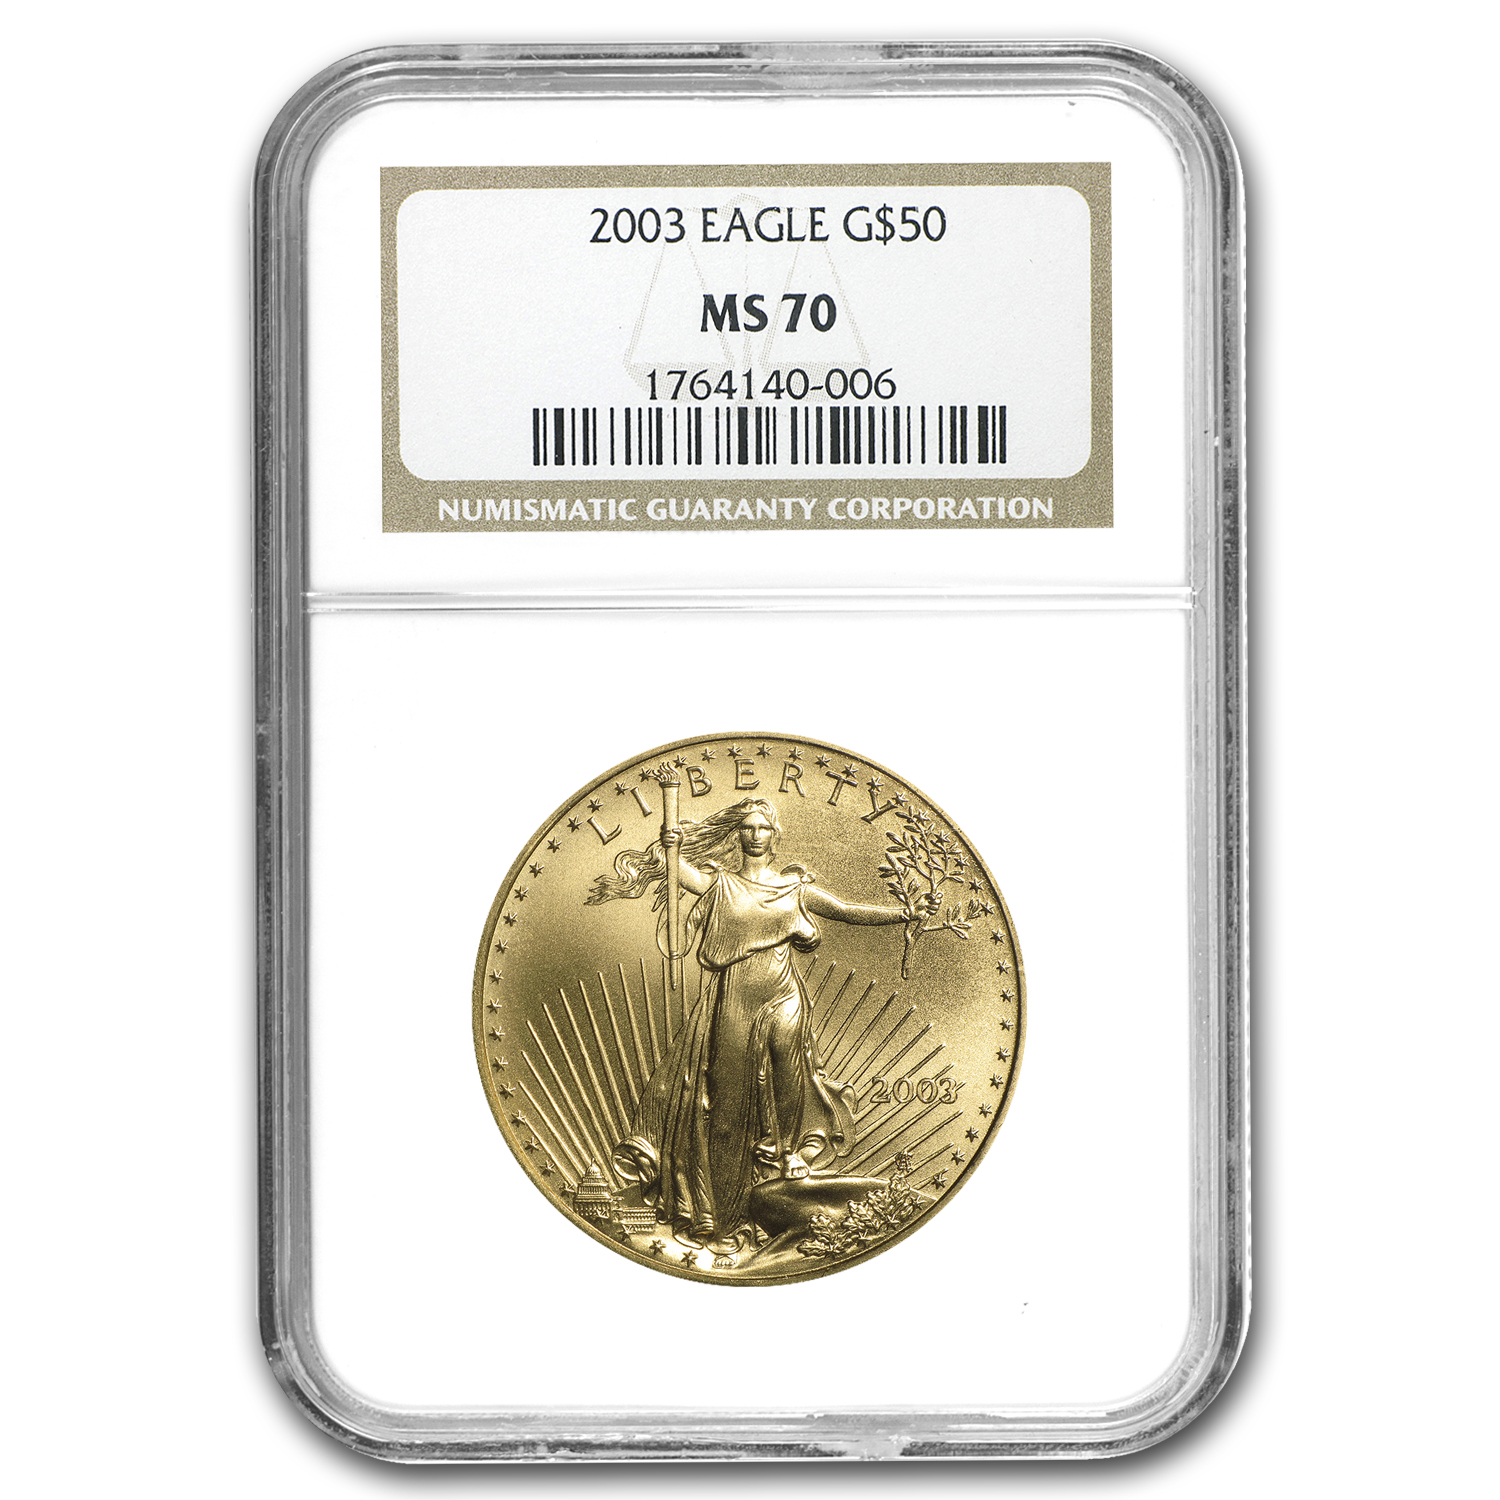 2003 1 oz Gold American Eagle MS-70 NGC